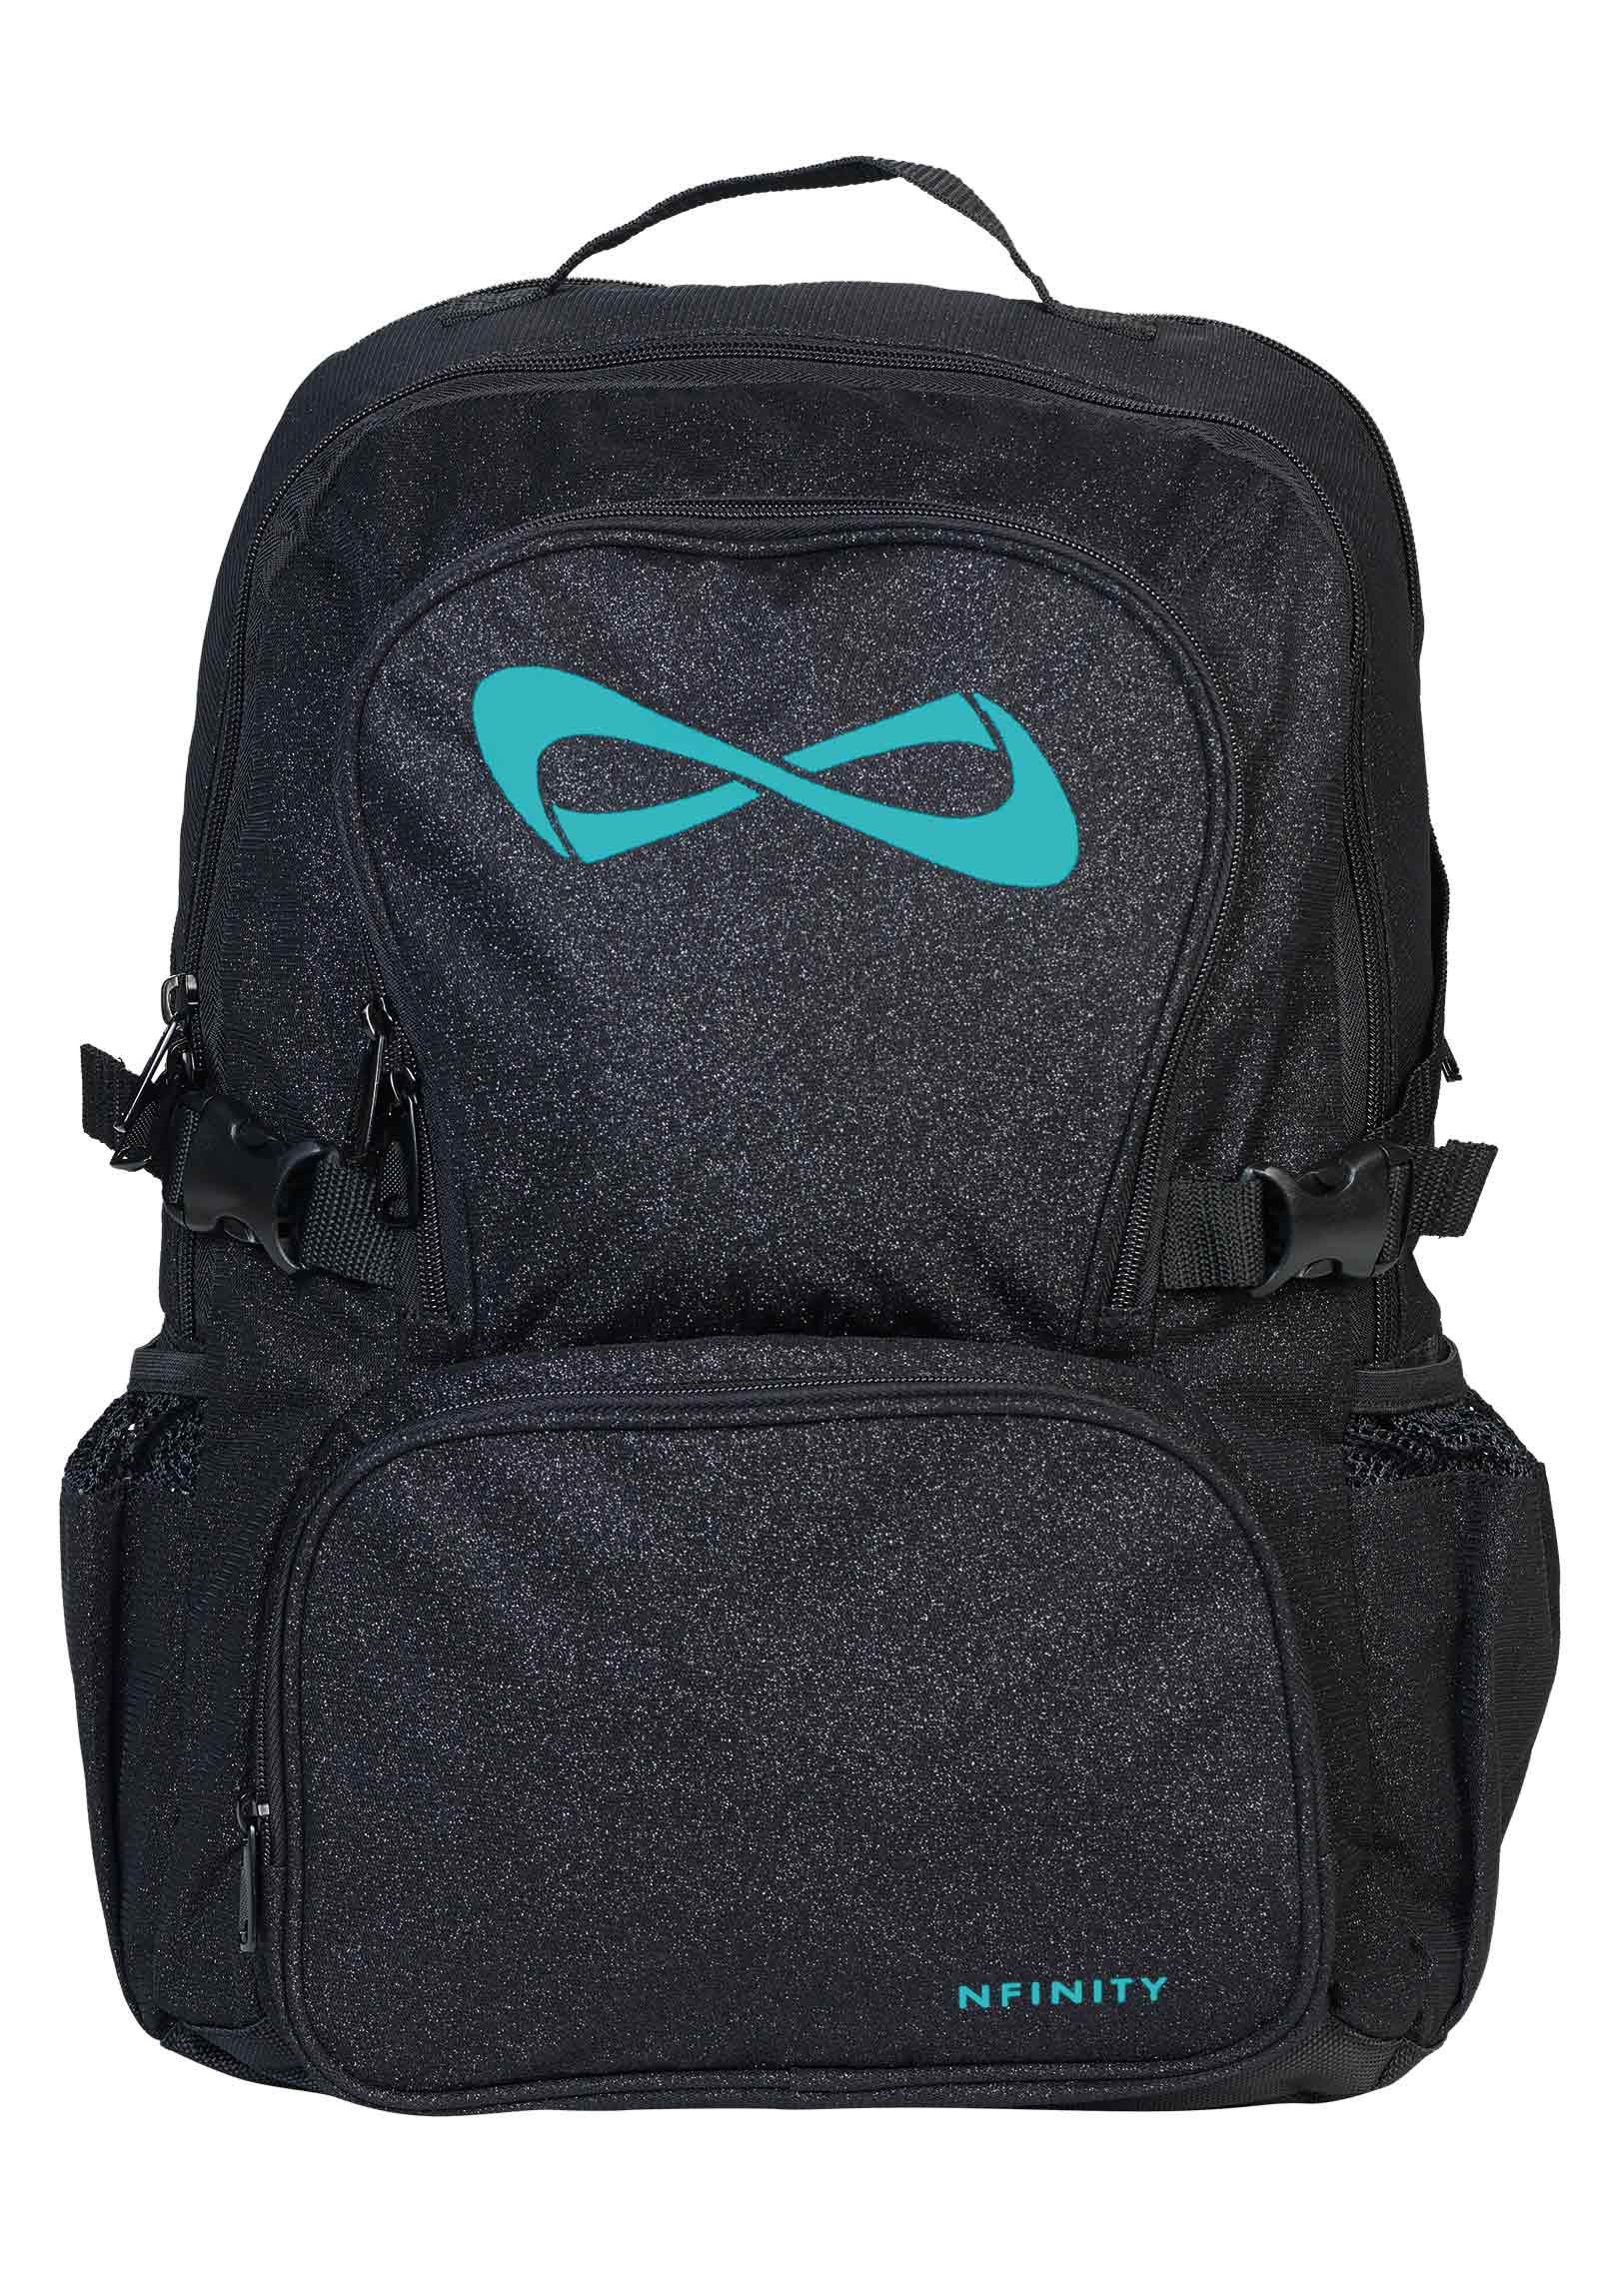 nfinity colored sparkle backpack team cheer girls got game 85